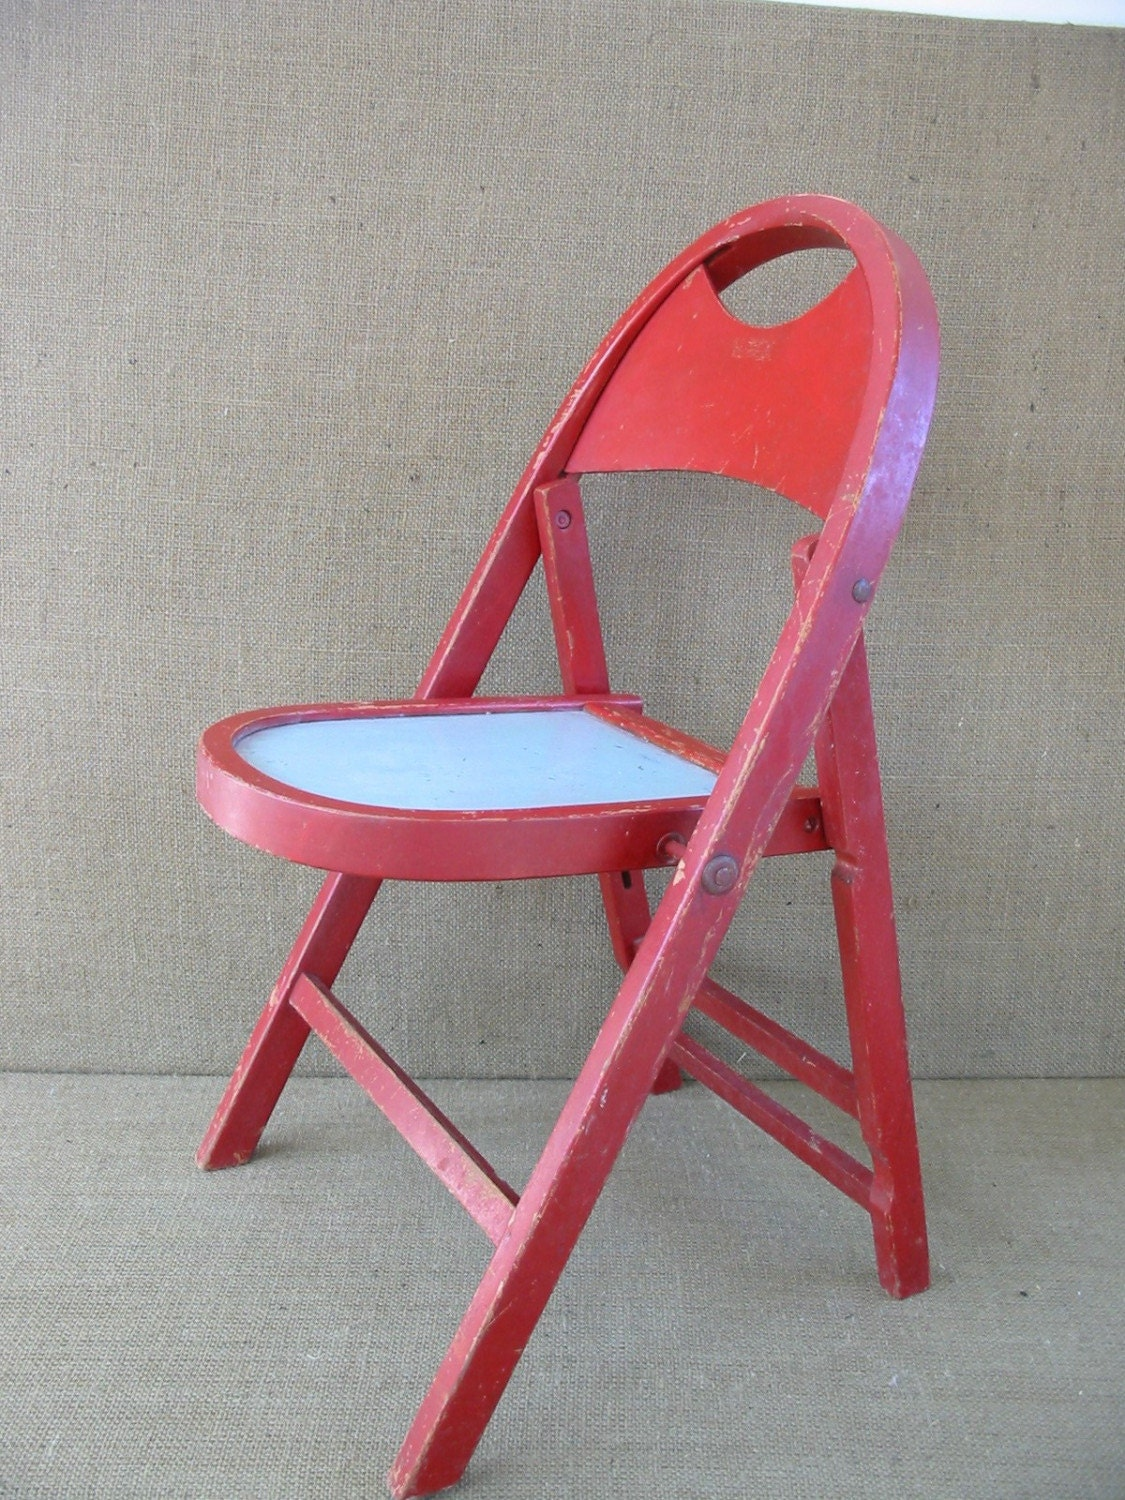 Child s Folding Chair Children s Chair Red Vintage